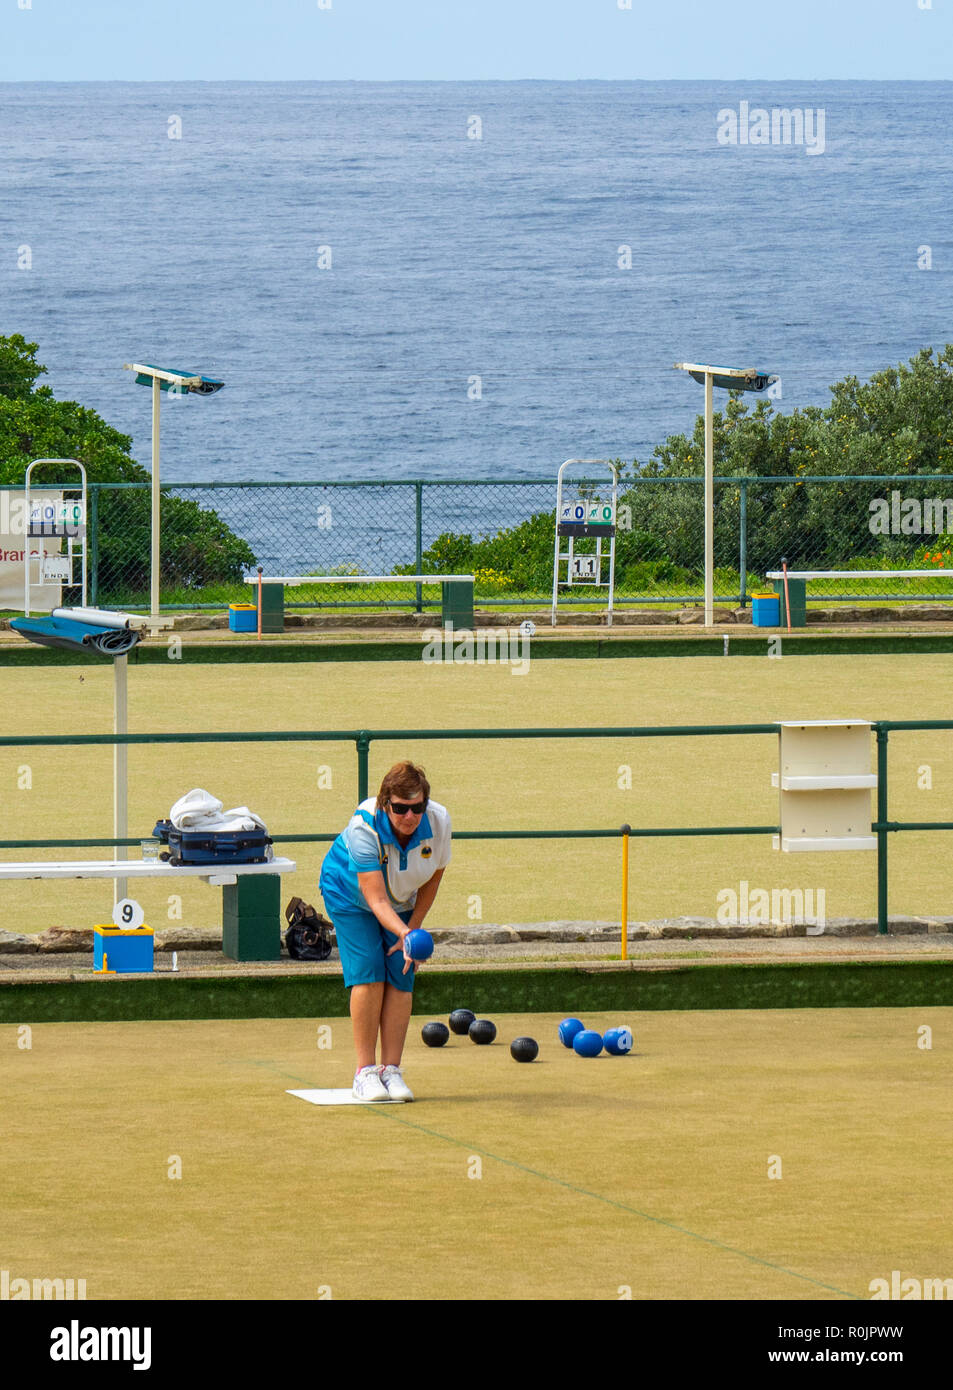 Woman playing lawn bowls at Clovelly Bowling and Recreation Club Sydney NSW Australia. - Stock Image